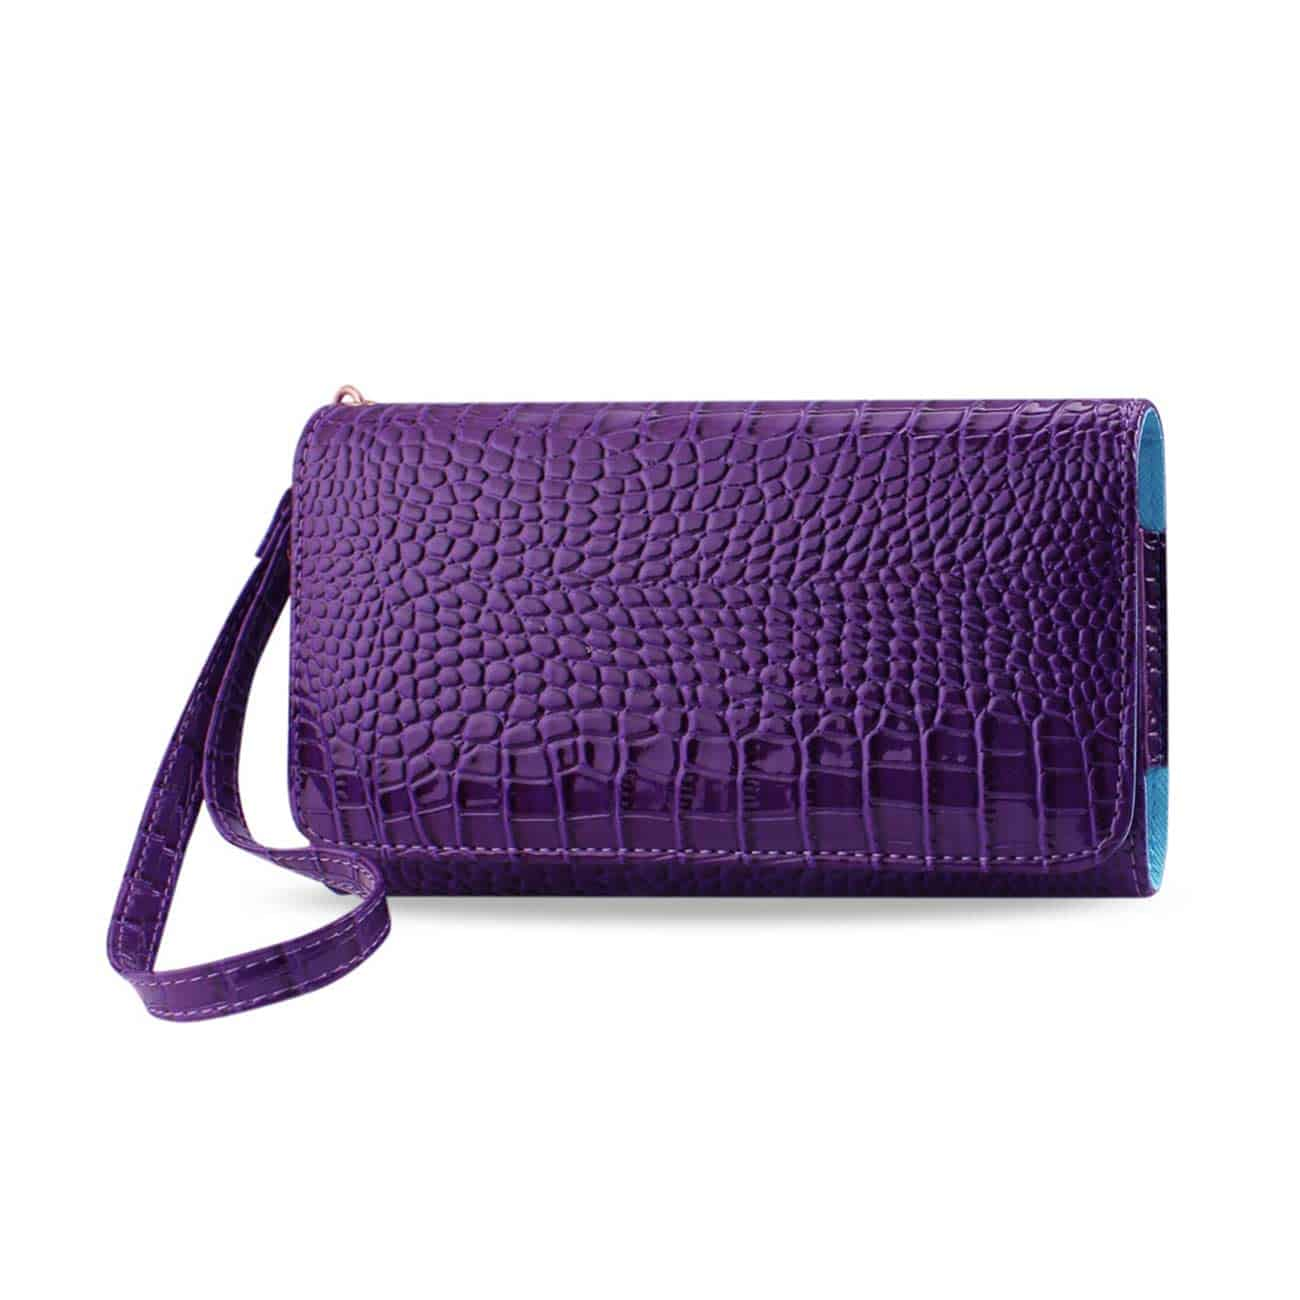 CROCODILE PATTERN PURSE WALLET CASE IN PURPLE